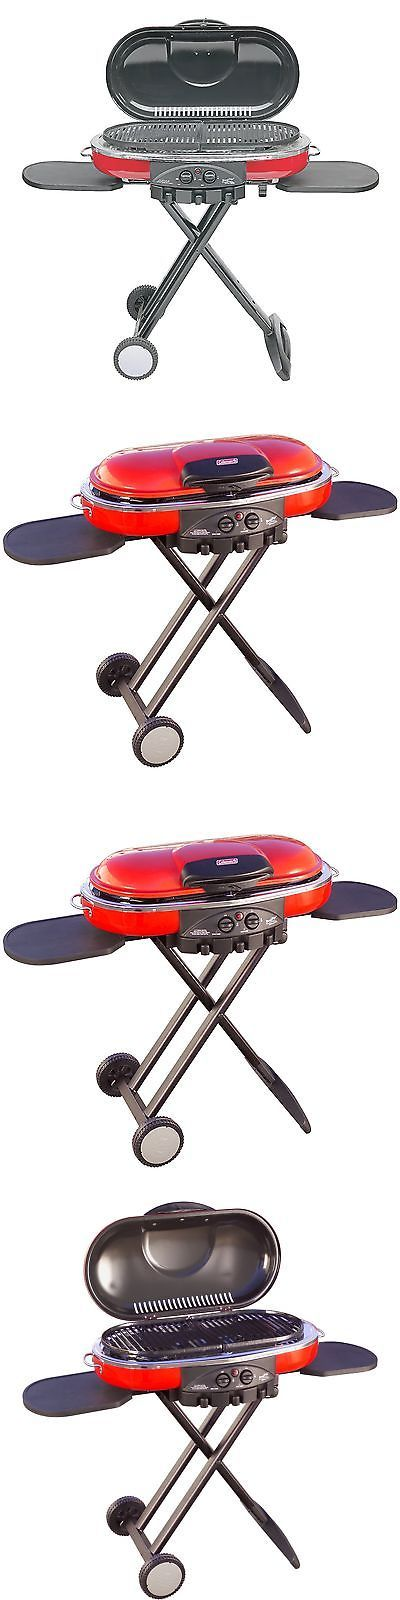 Camping BBQs and Grills 181388: Coleman Road Trip Propane Portable Grill Lxe Red Propane Gas Camping Outdoor New -> BUY IT NOW ONLY: $126.39 on eBay!